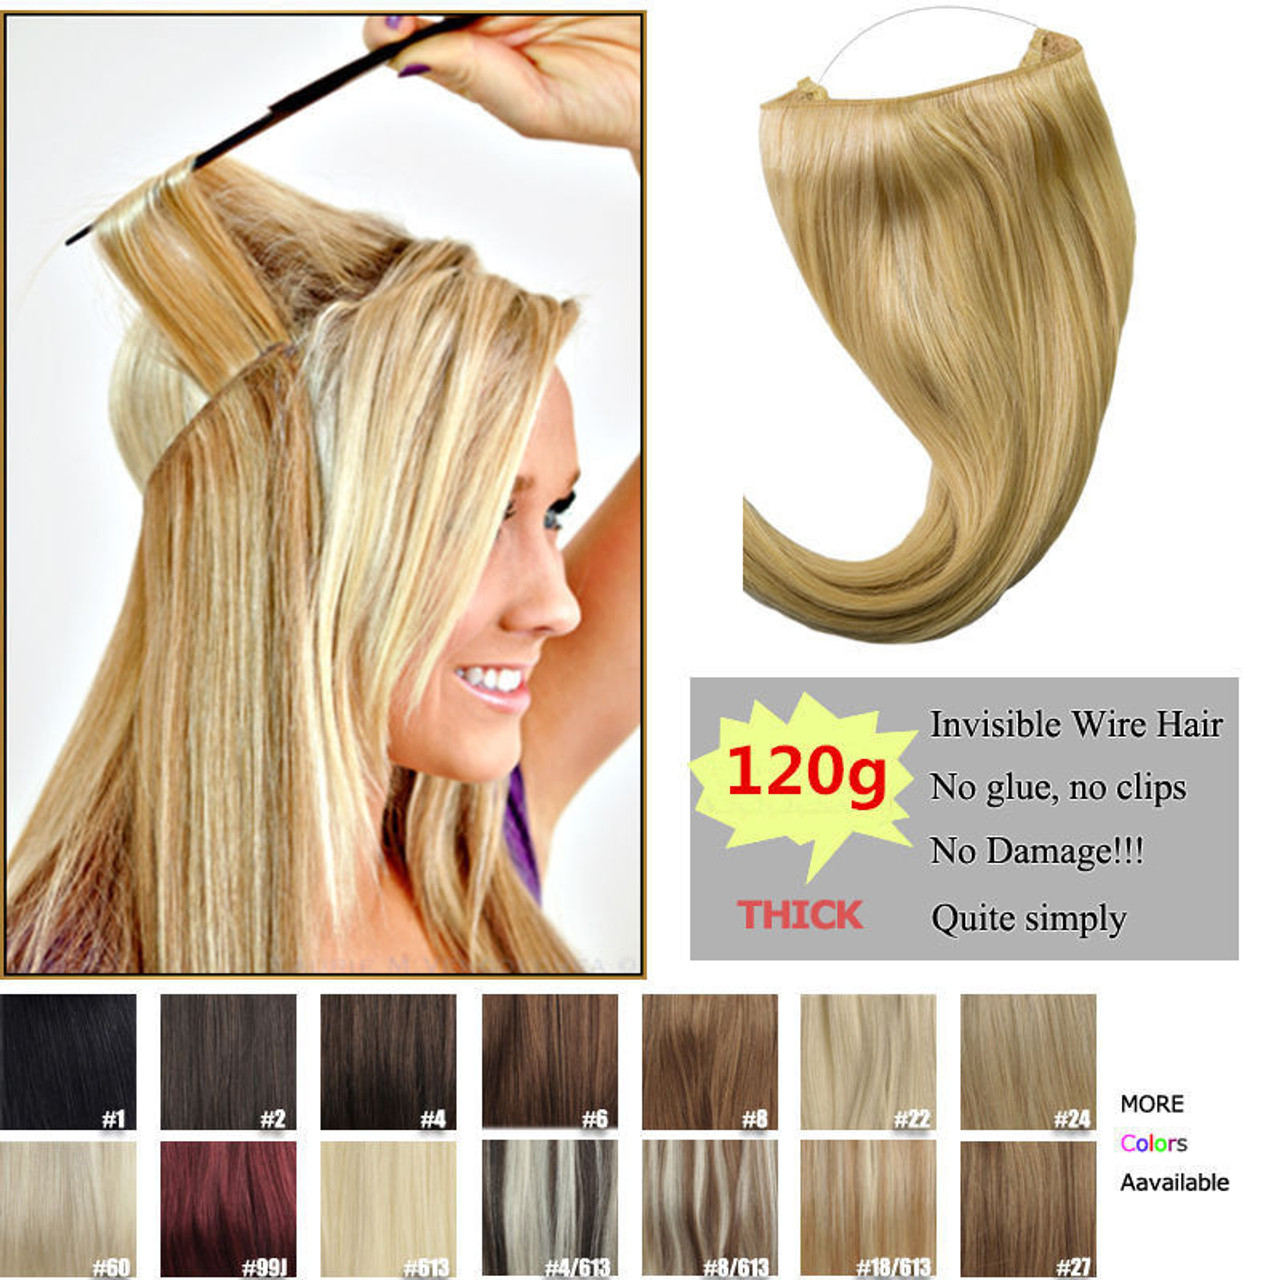 Remeehi 120g Thick Human Remy Secret Invisible Wire Secret Halo Hair